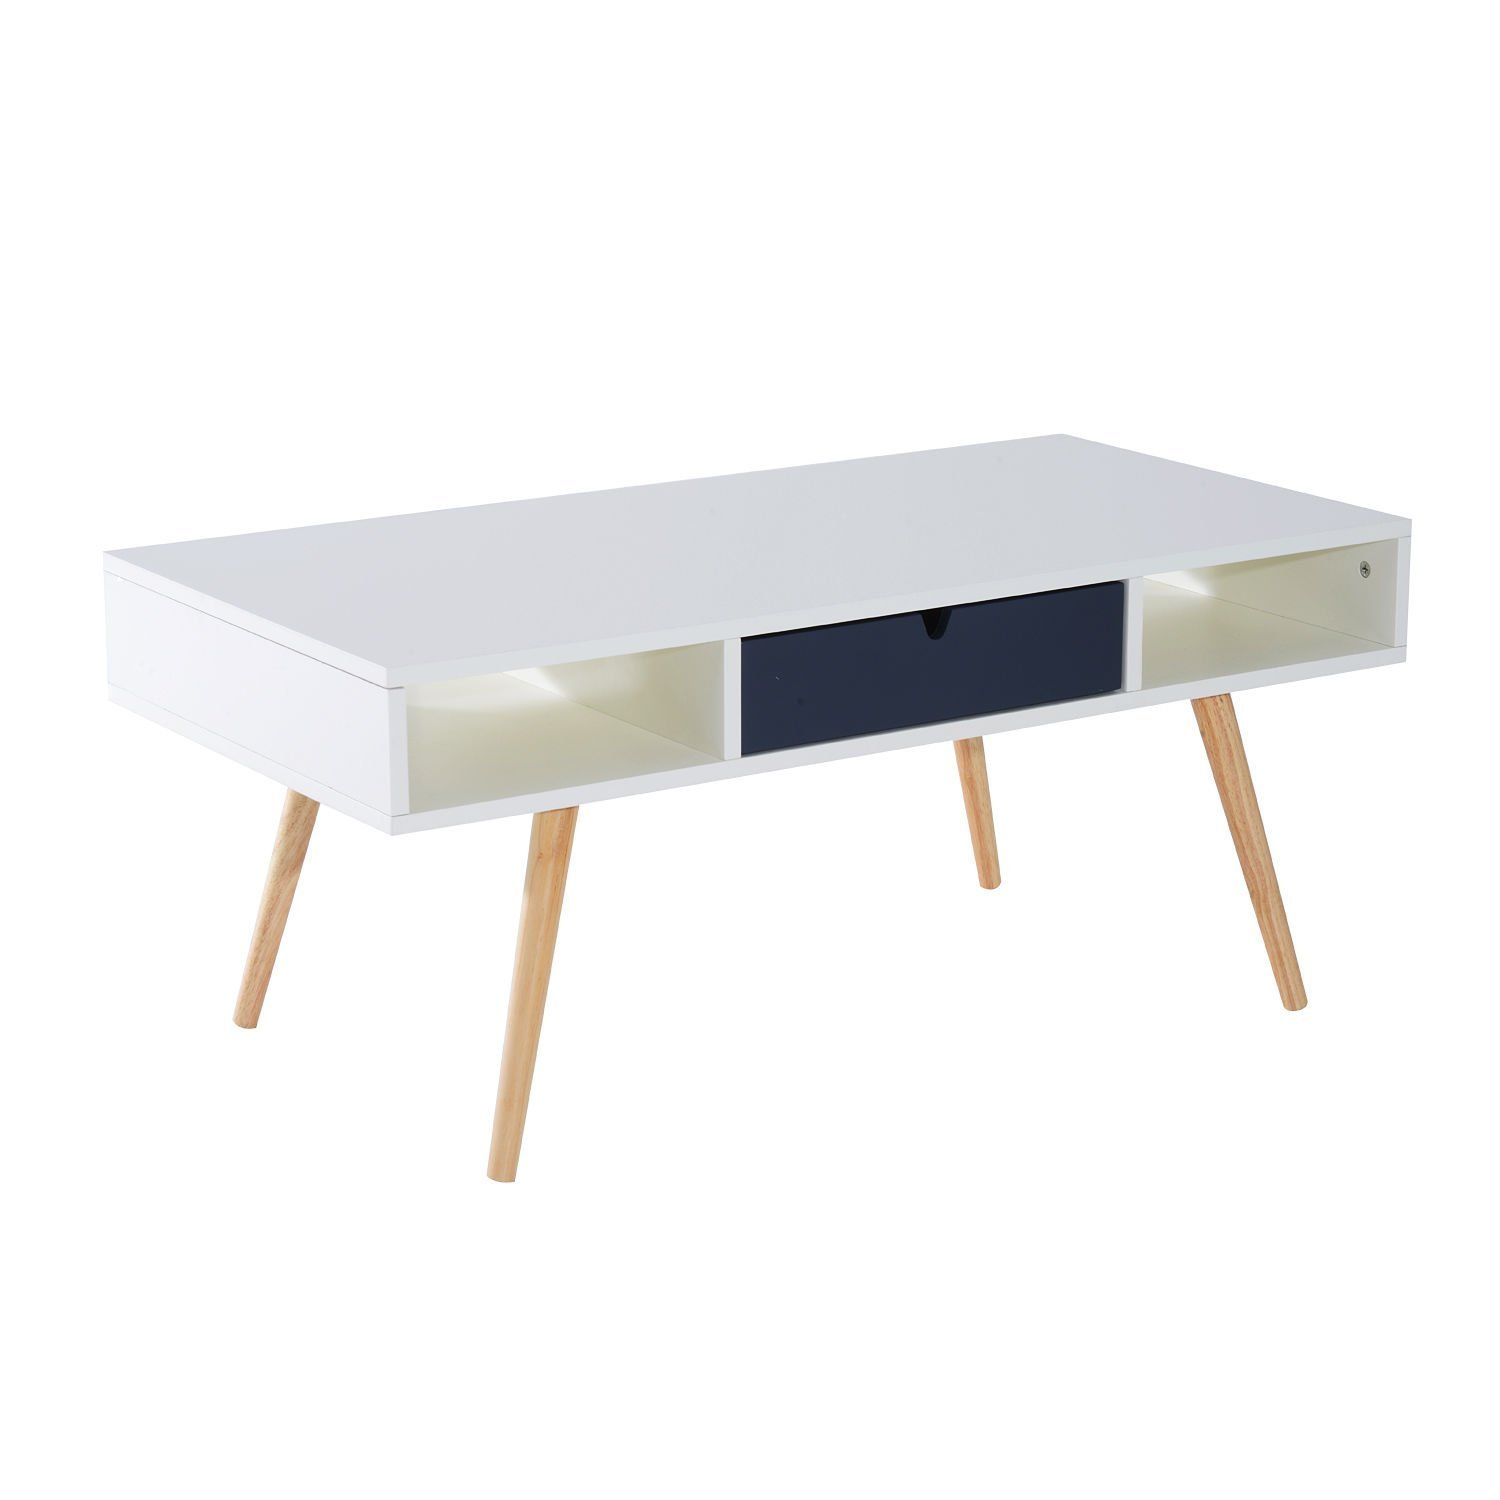 "HOMCOM 40"" Mid Century Modern Wooden Coffee Table with Drawer - White/Blue Grey/Woodgrain"